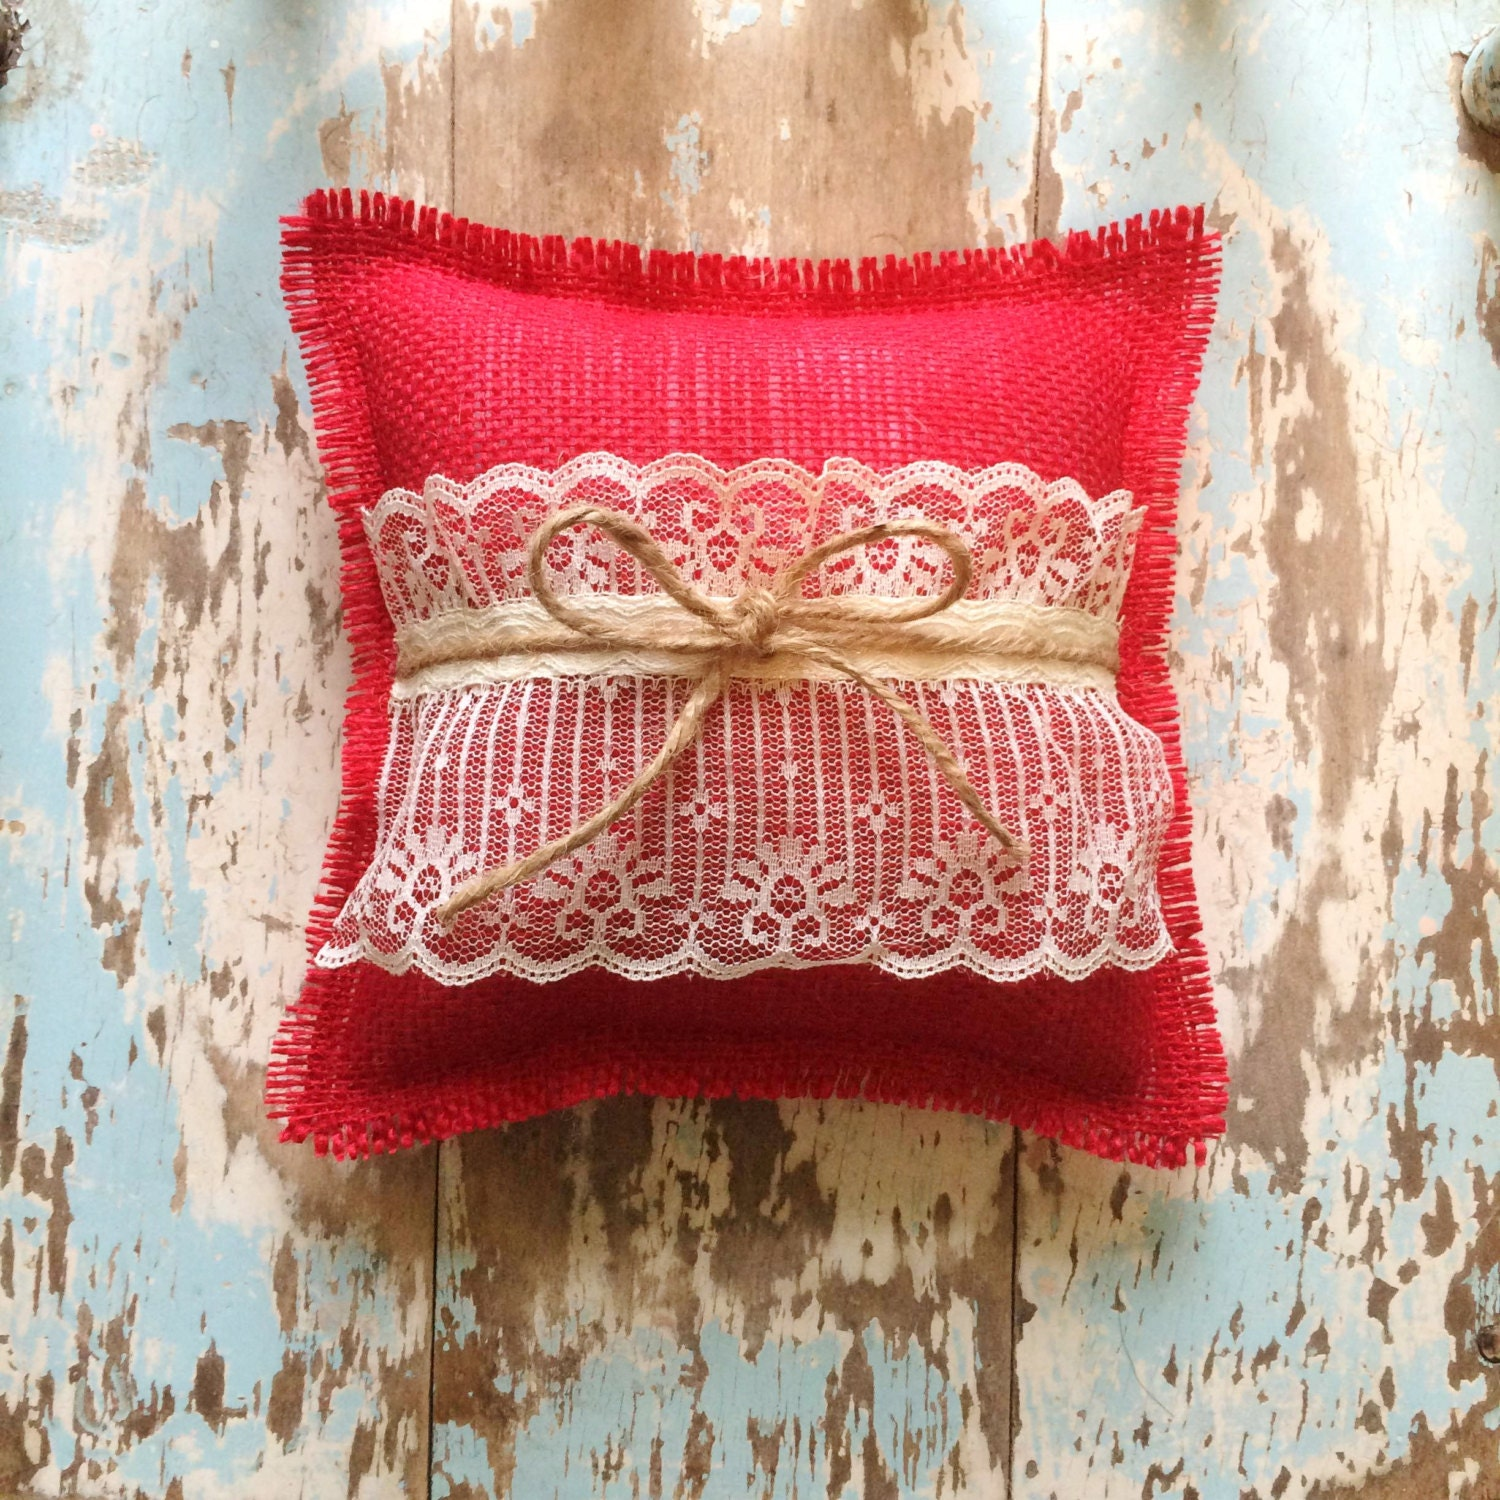 8 x 8 Burlap Ring Bearer Pillow w/ Lace & Jute Twine- Rustic/Country ...